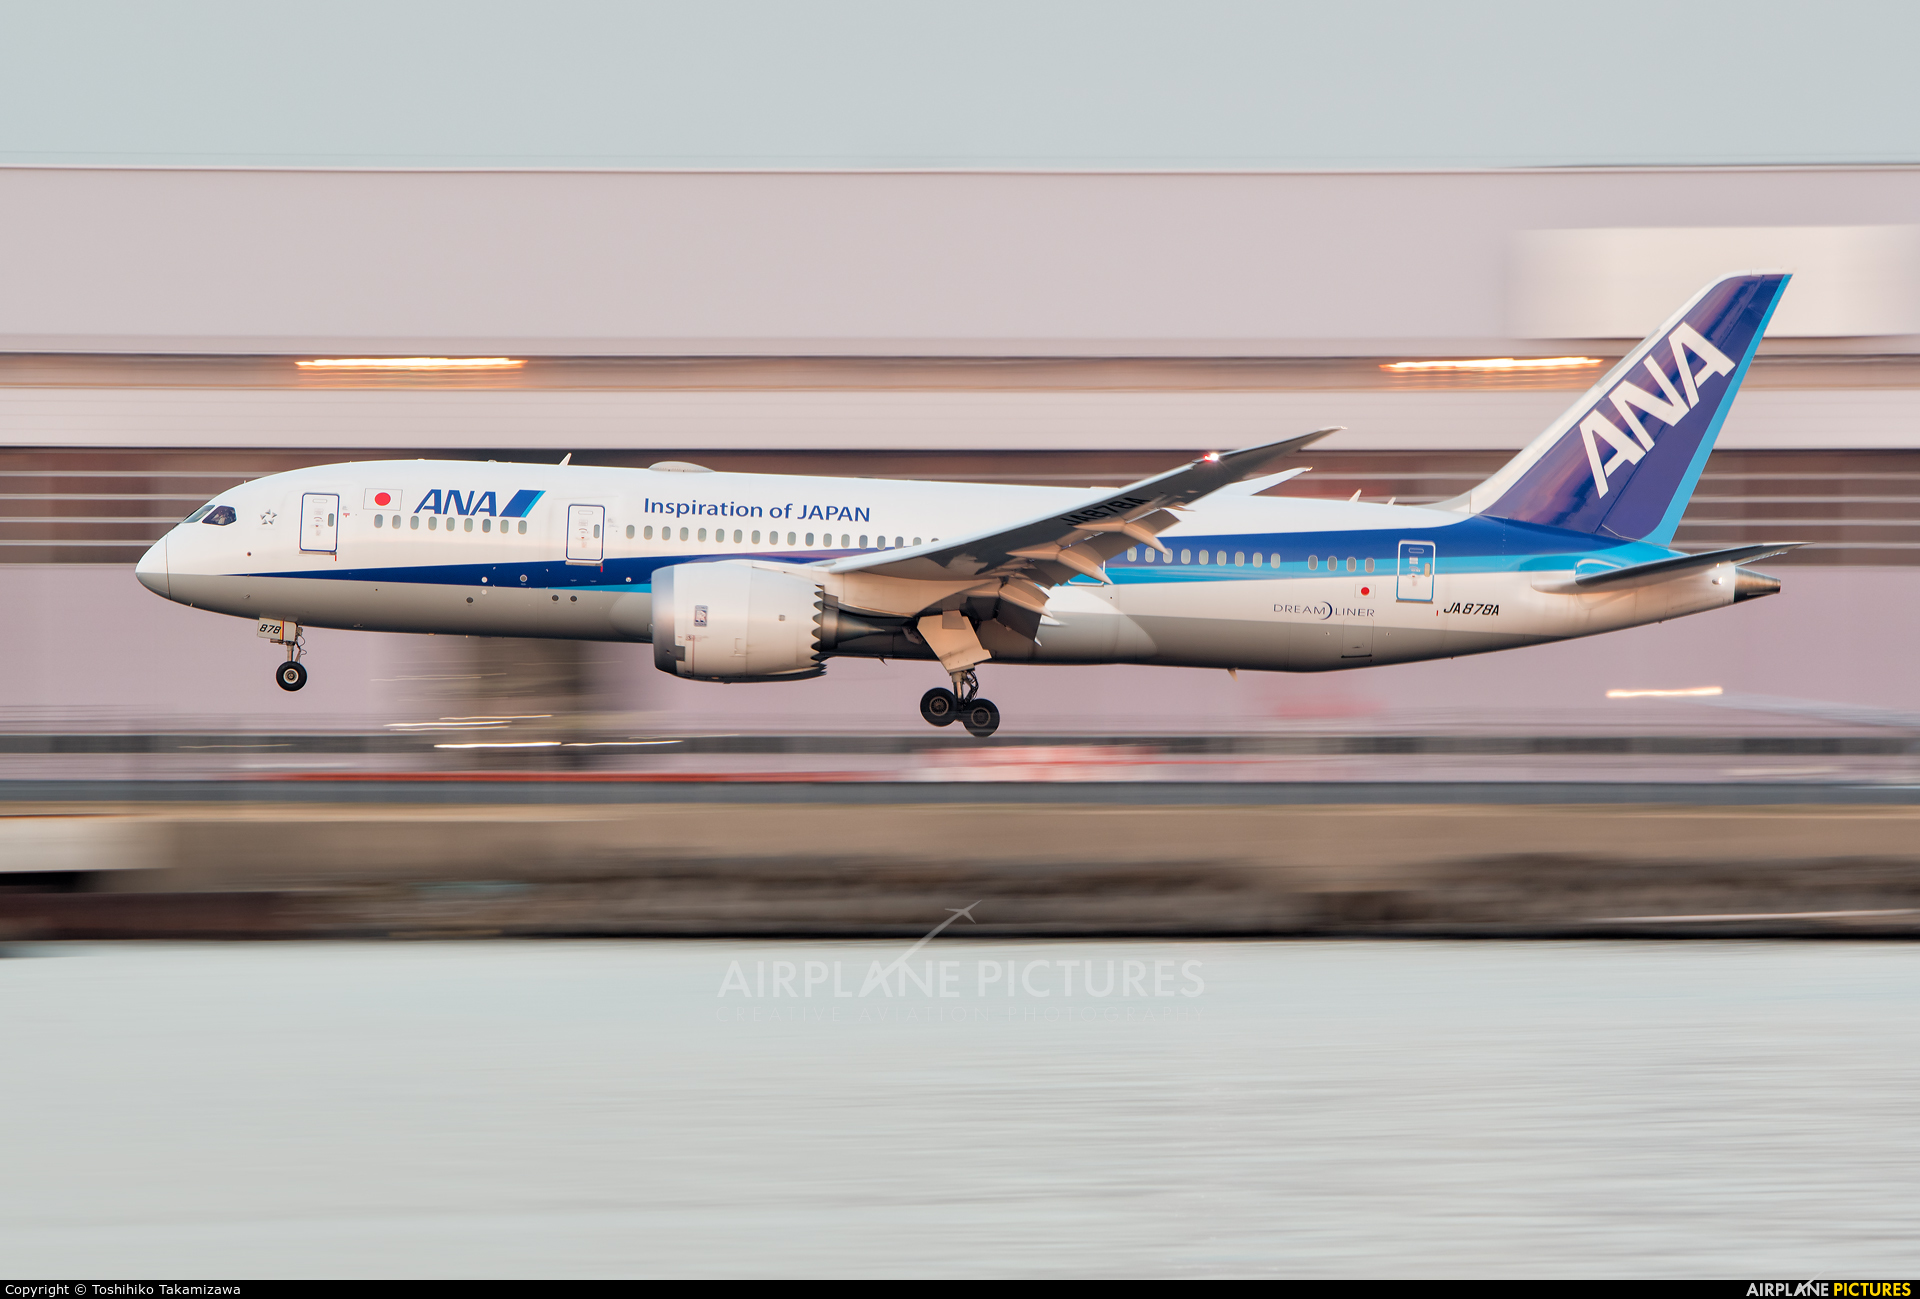 ANA - All Nippon Airways JA878A aircraft at Tokyo - Haneda Intl